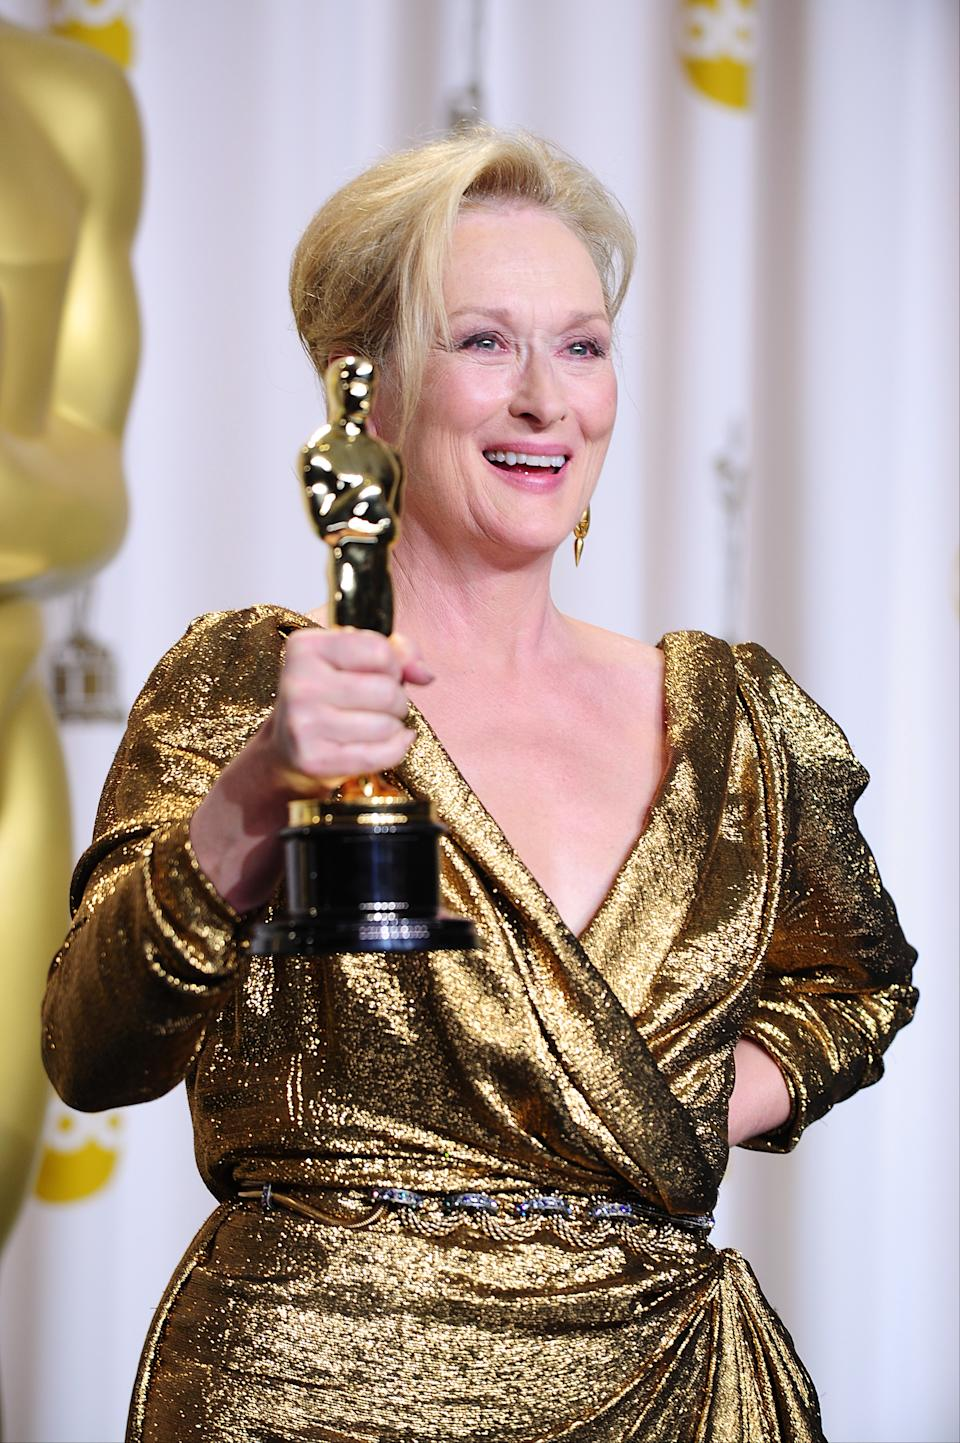 Meryl Streep with the Best Actress award, received for The Iron Lady, at the 84th Academy Awards at the Kodak Theatre, Los Angeles. (Photo by Ian West/PA Images via Getty Images)